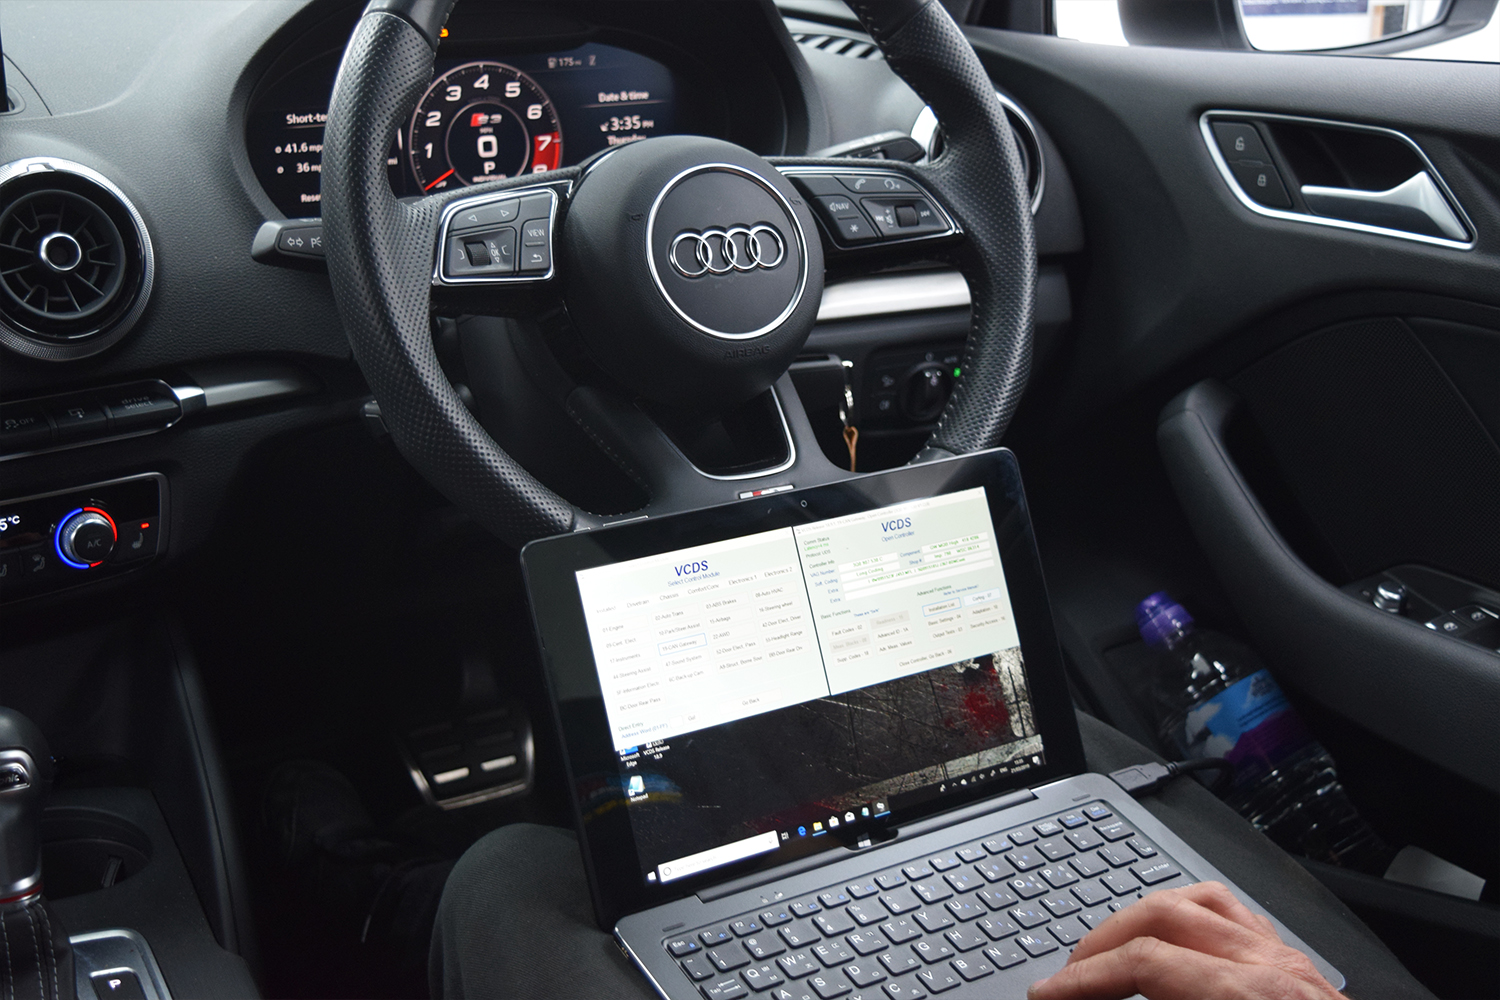 Audi S3 8V Retrofits: Case Study - Advanced In-Car Technologies